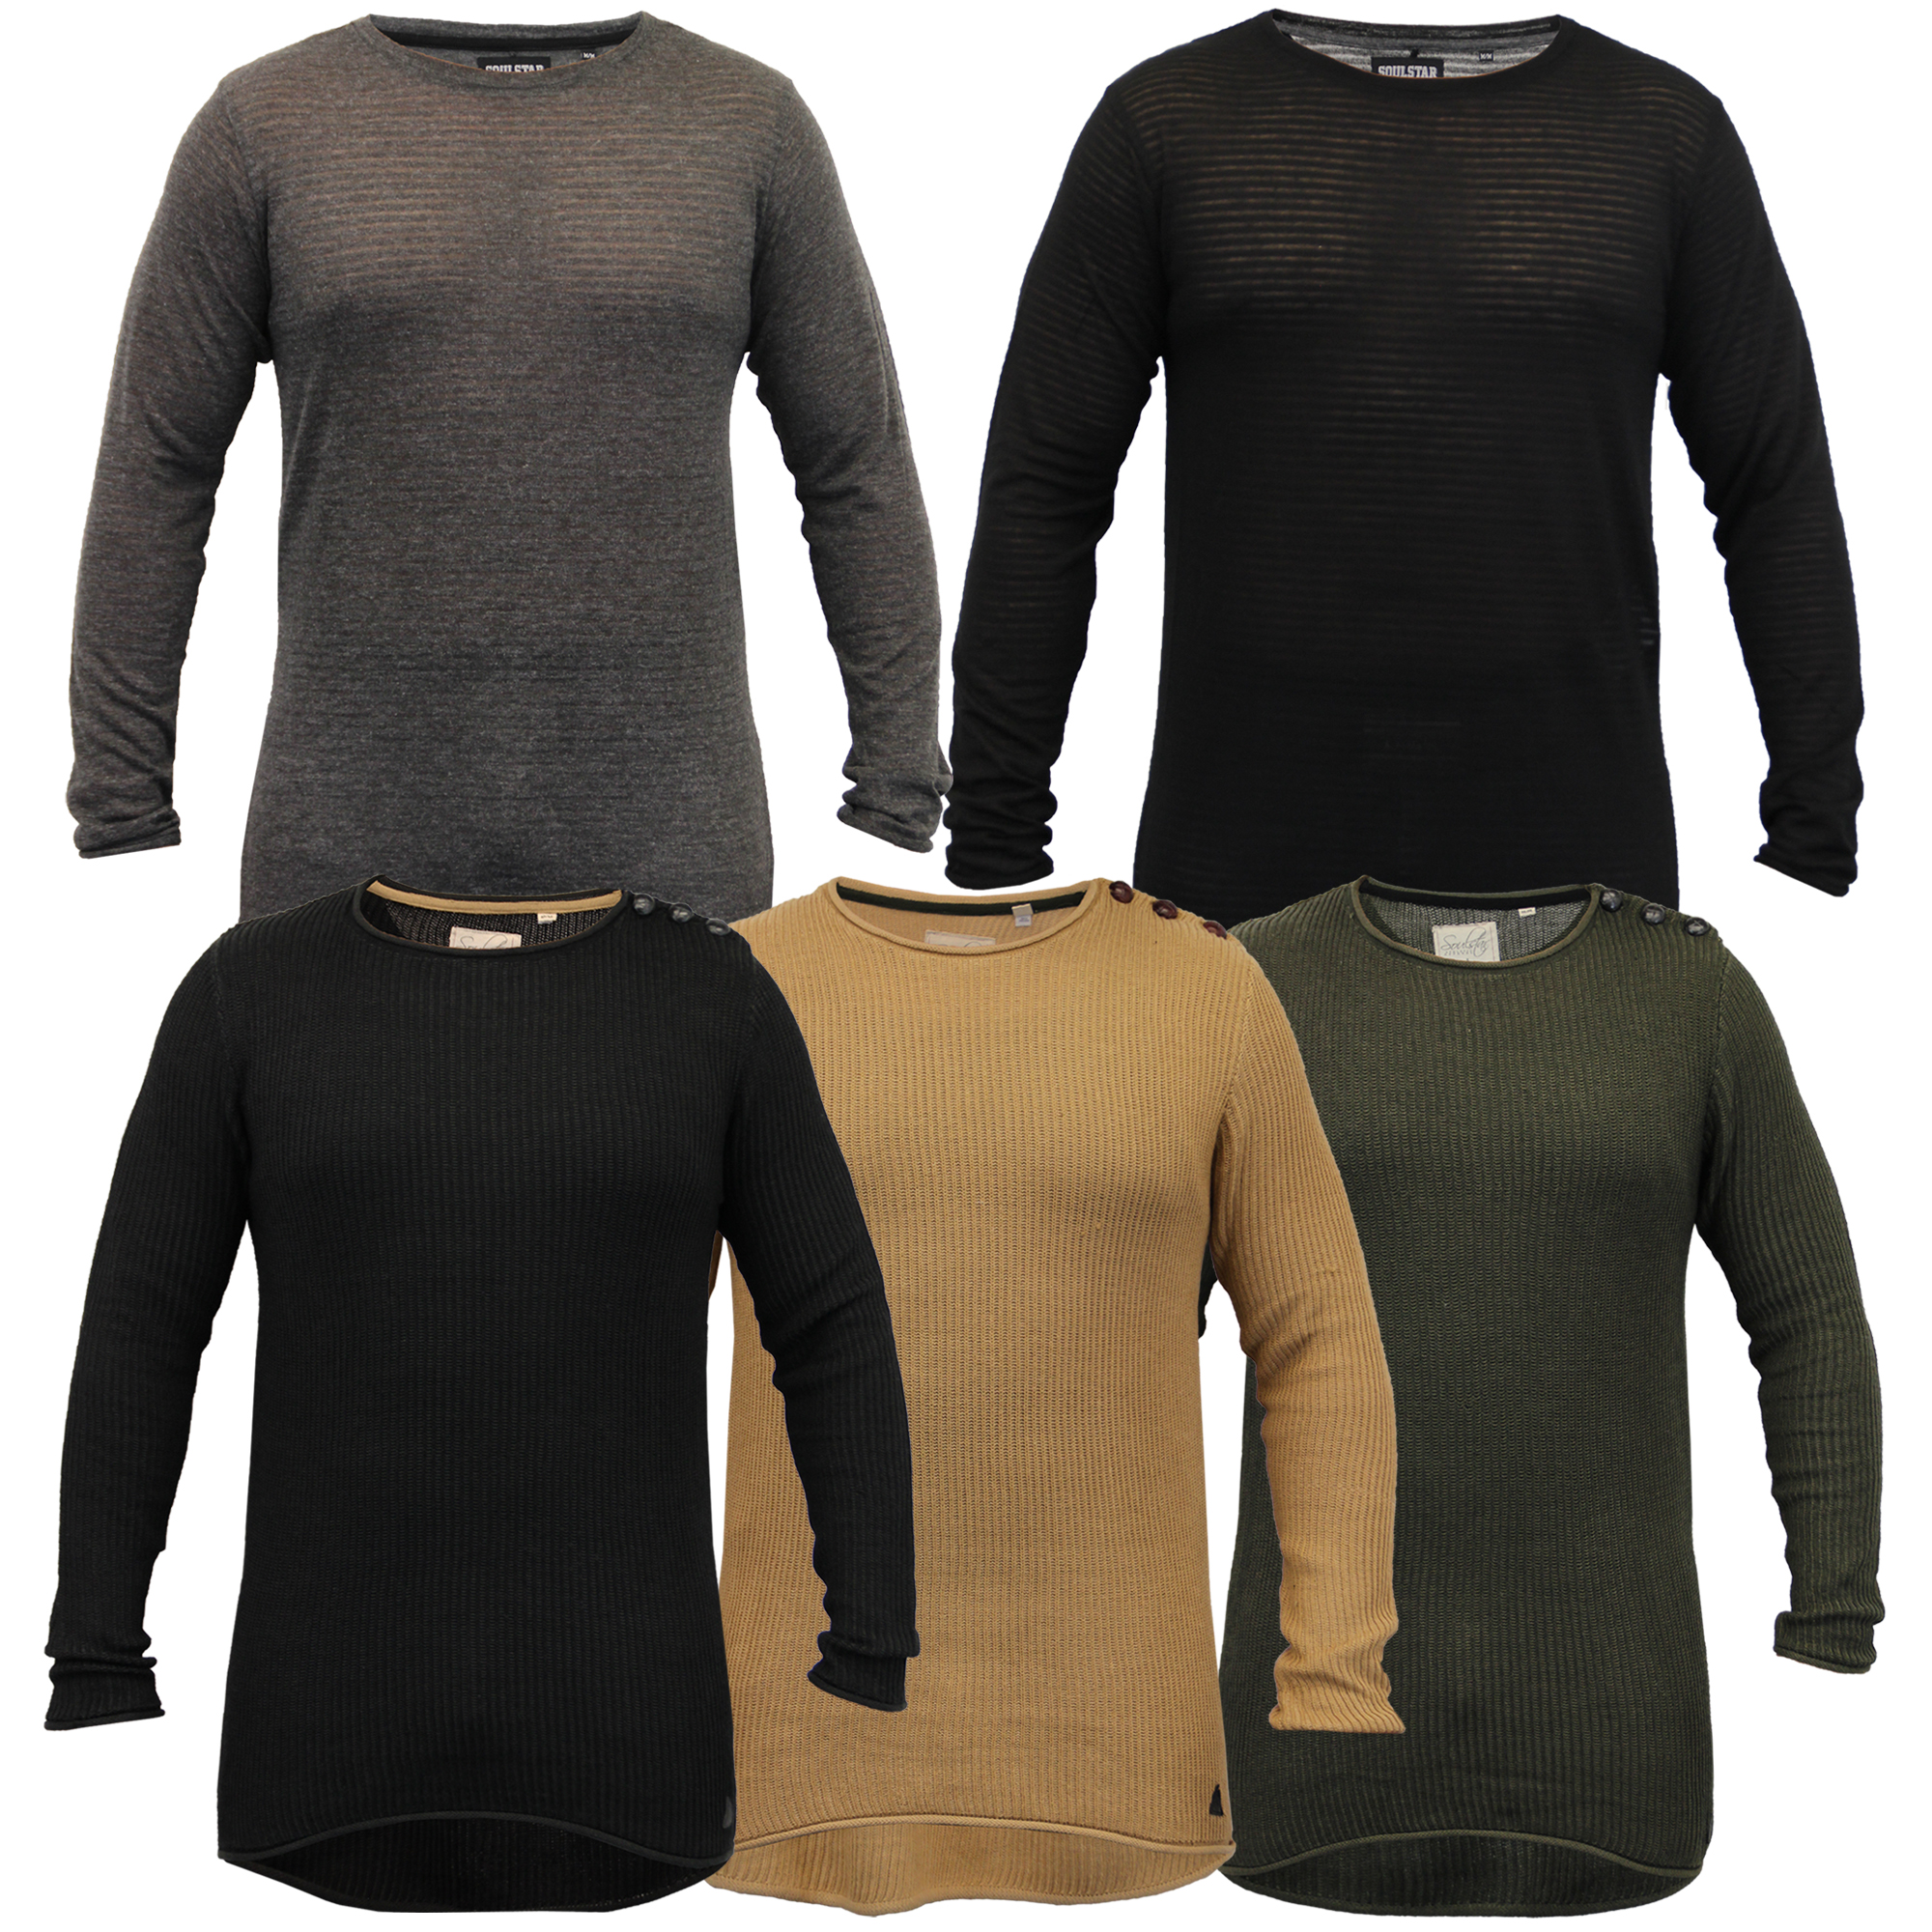 Mens-Long-Line-Jumper-Soul-Star-Sweater-High-Low-Hem-Top-Knitted-Pullover-Winter thumbnail 4